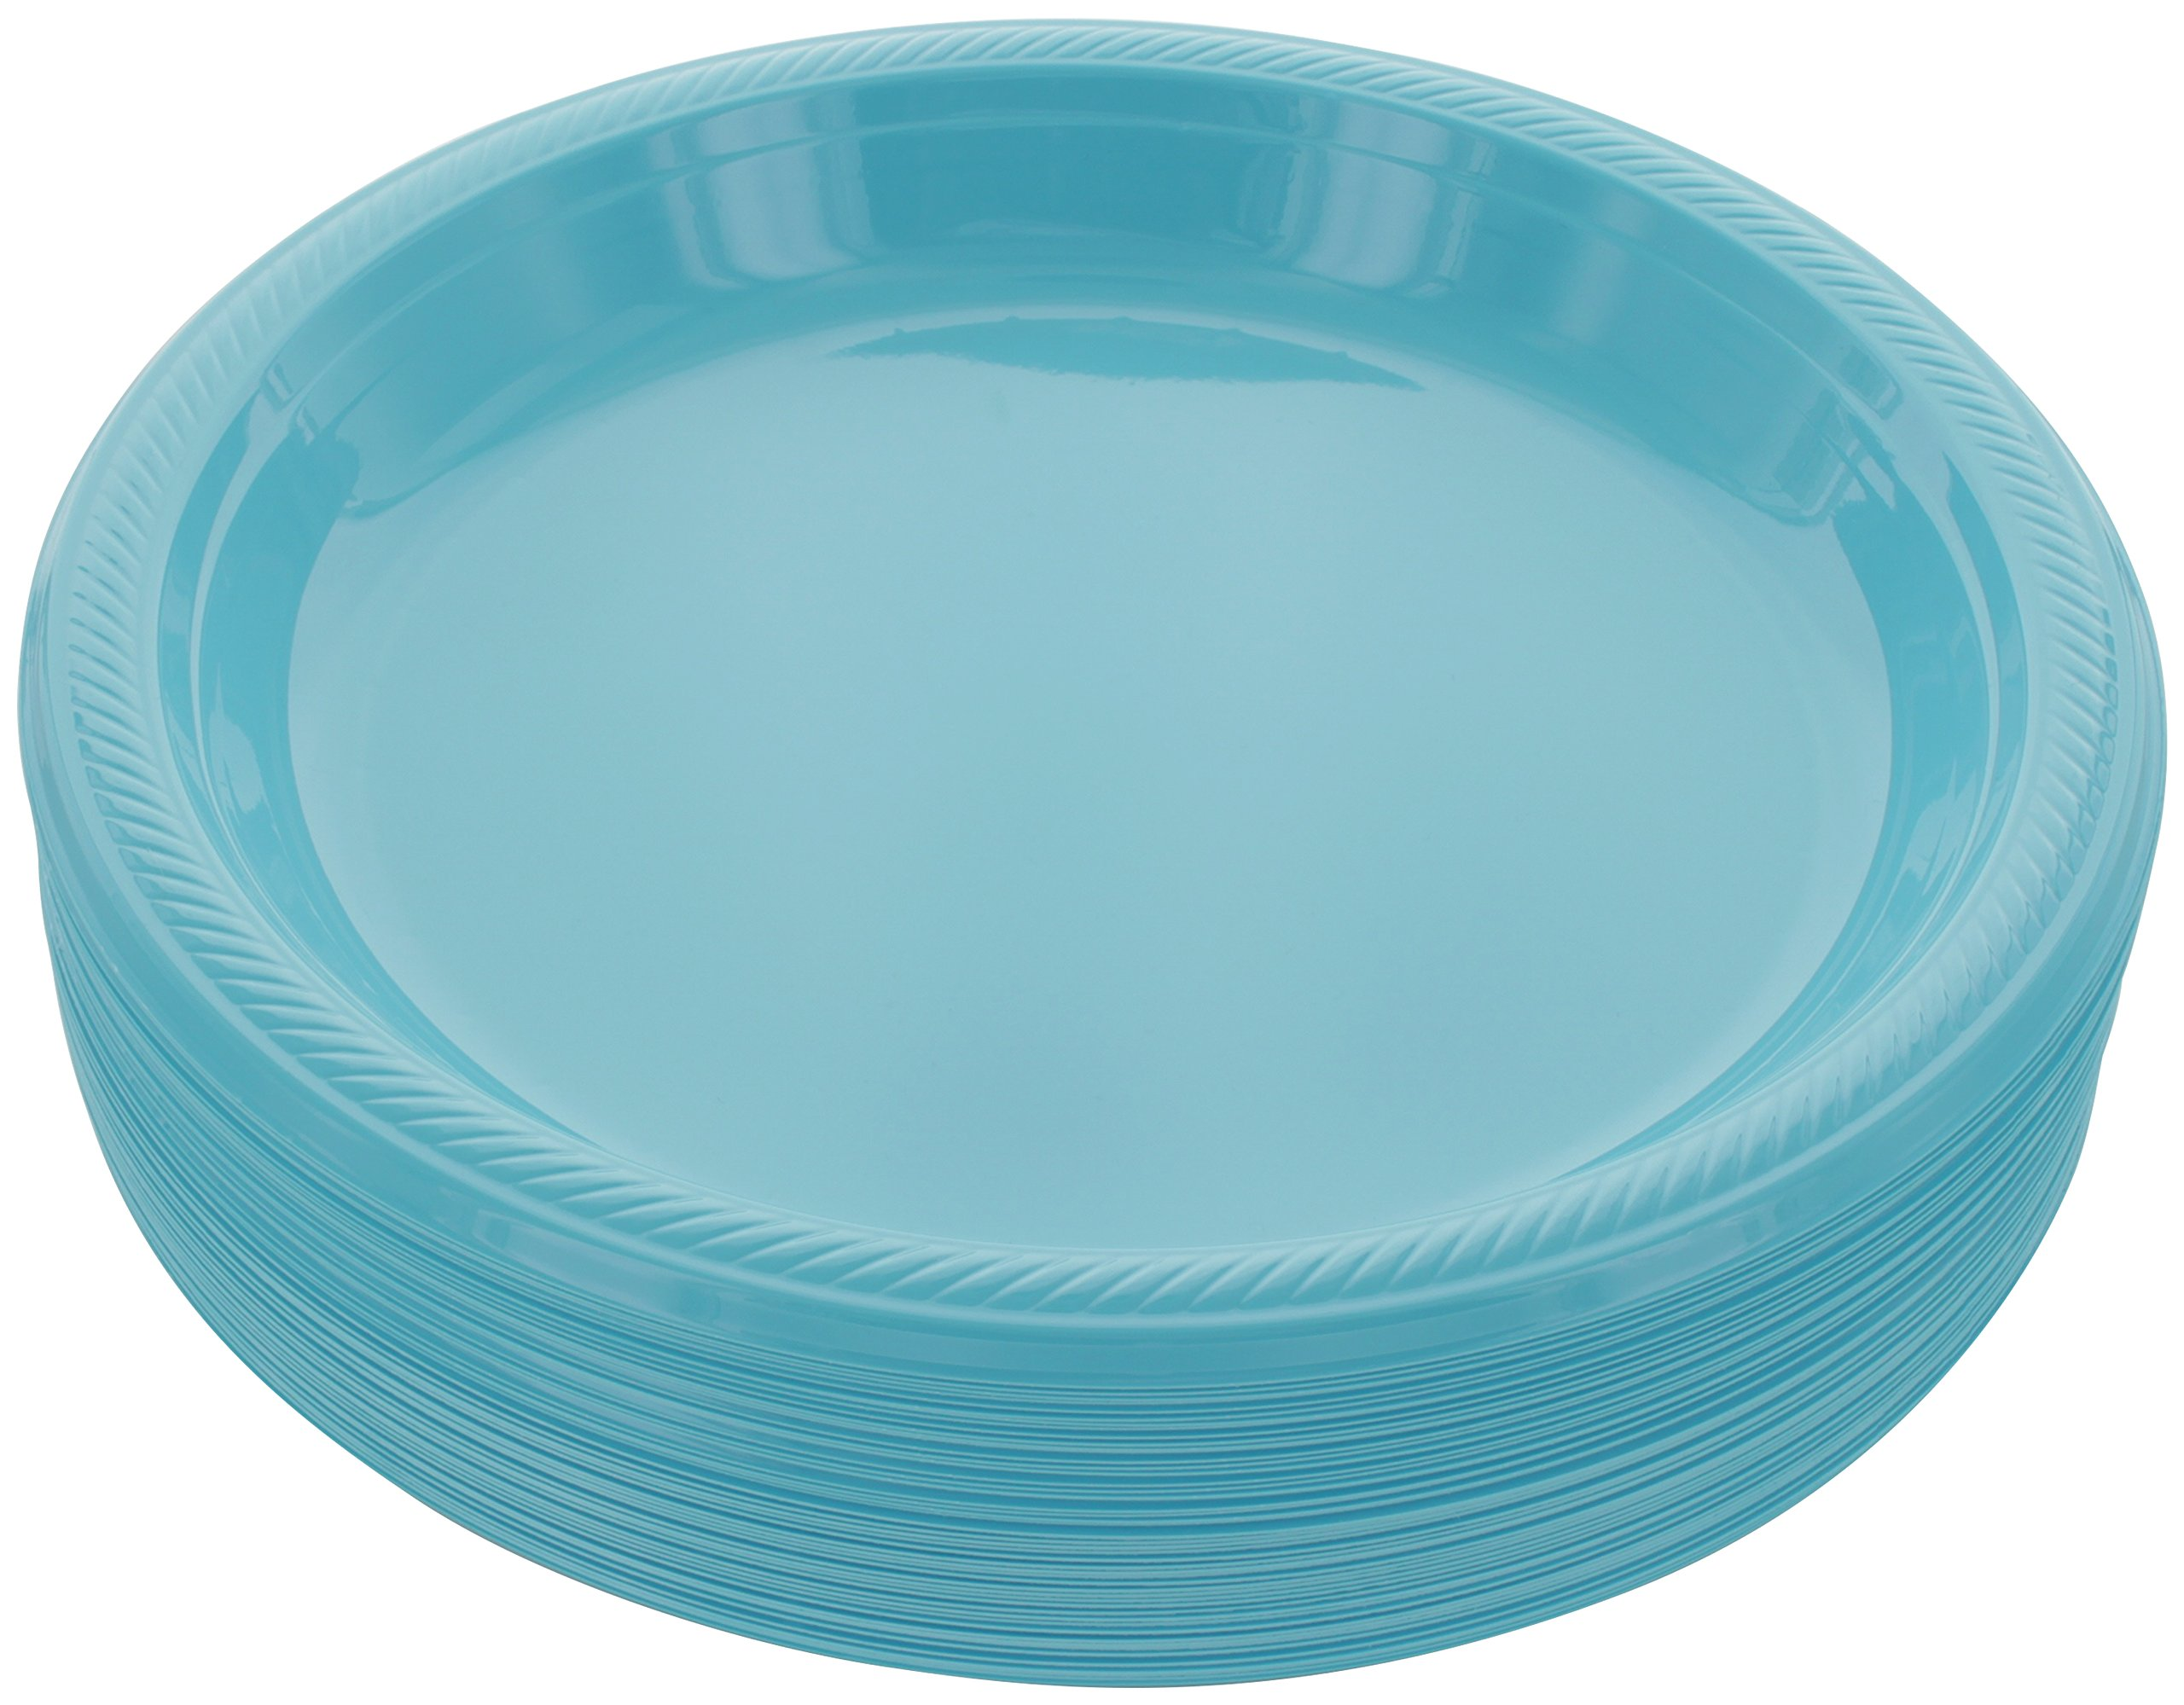 "Amcrate Light Blue Disposable Plastic Party Plates 10.4"" - Ideal for Weddings, Party's, Birthdays, Dinners, Lunch's. (Pack of 50)"